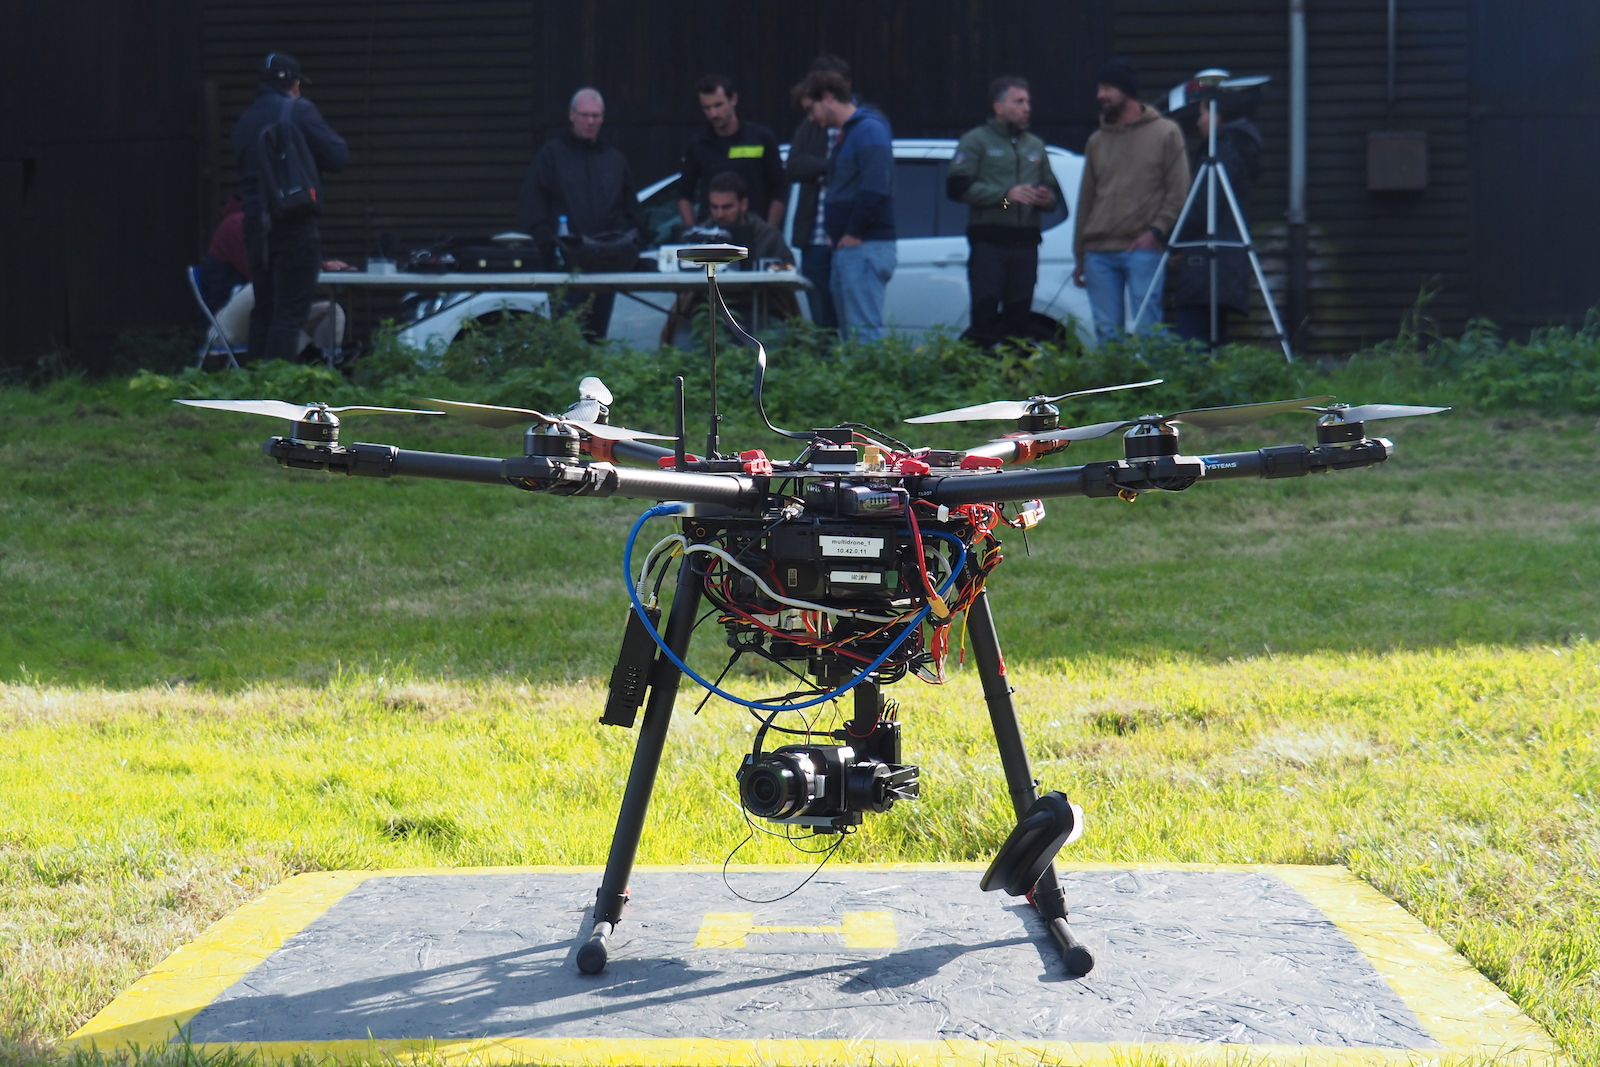 A MultiDrone waits for liftoff, while team-members prepare in the background